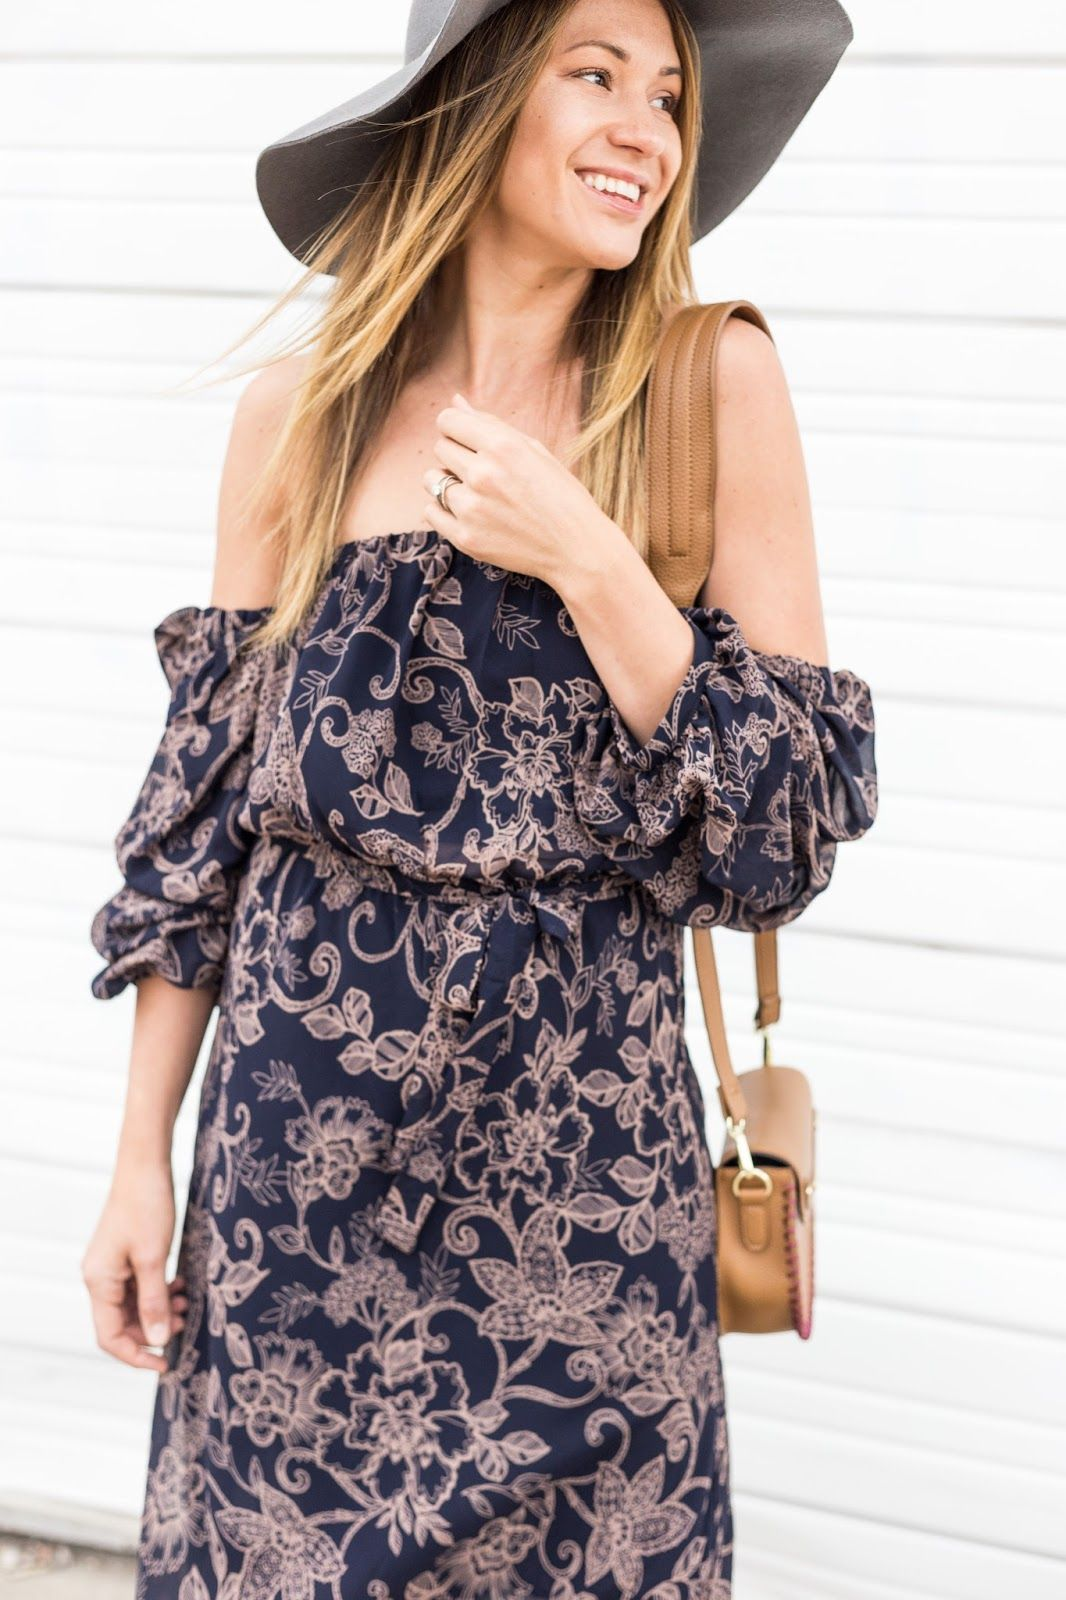 Fashion style Maxi floral dresses favorite summer outfit for lady